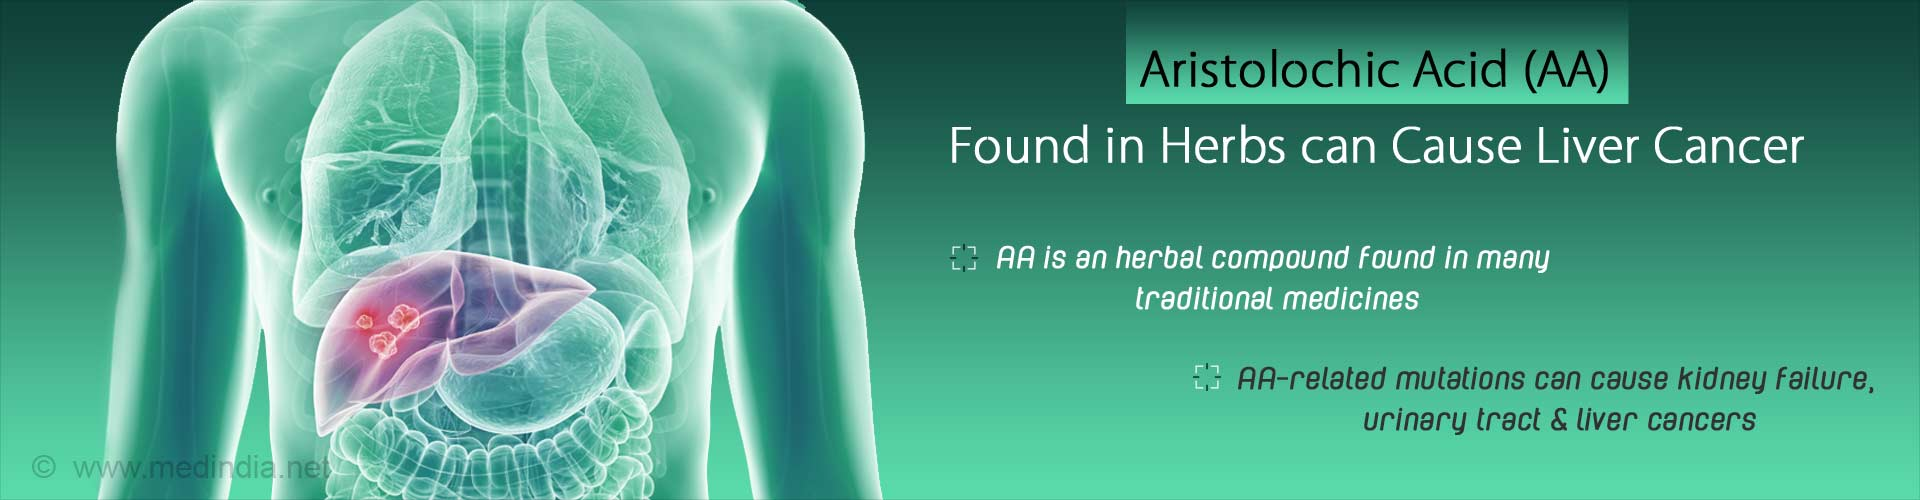 Herbal Remedies that Contain Aristolochic Acid Causes Liver Cancer